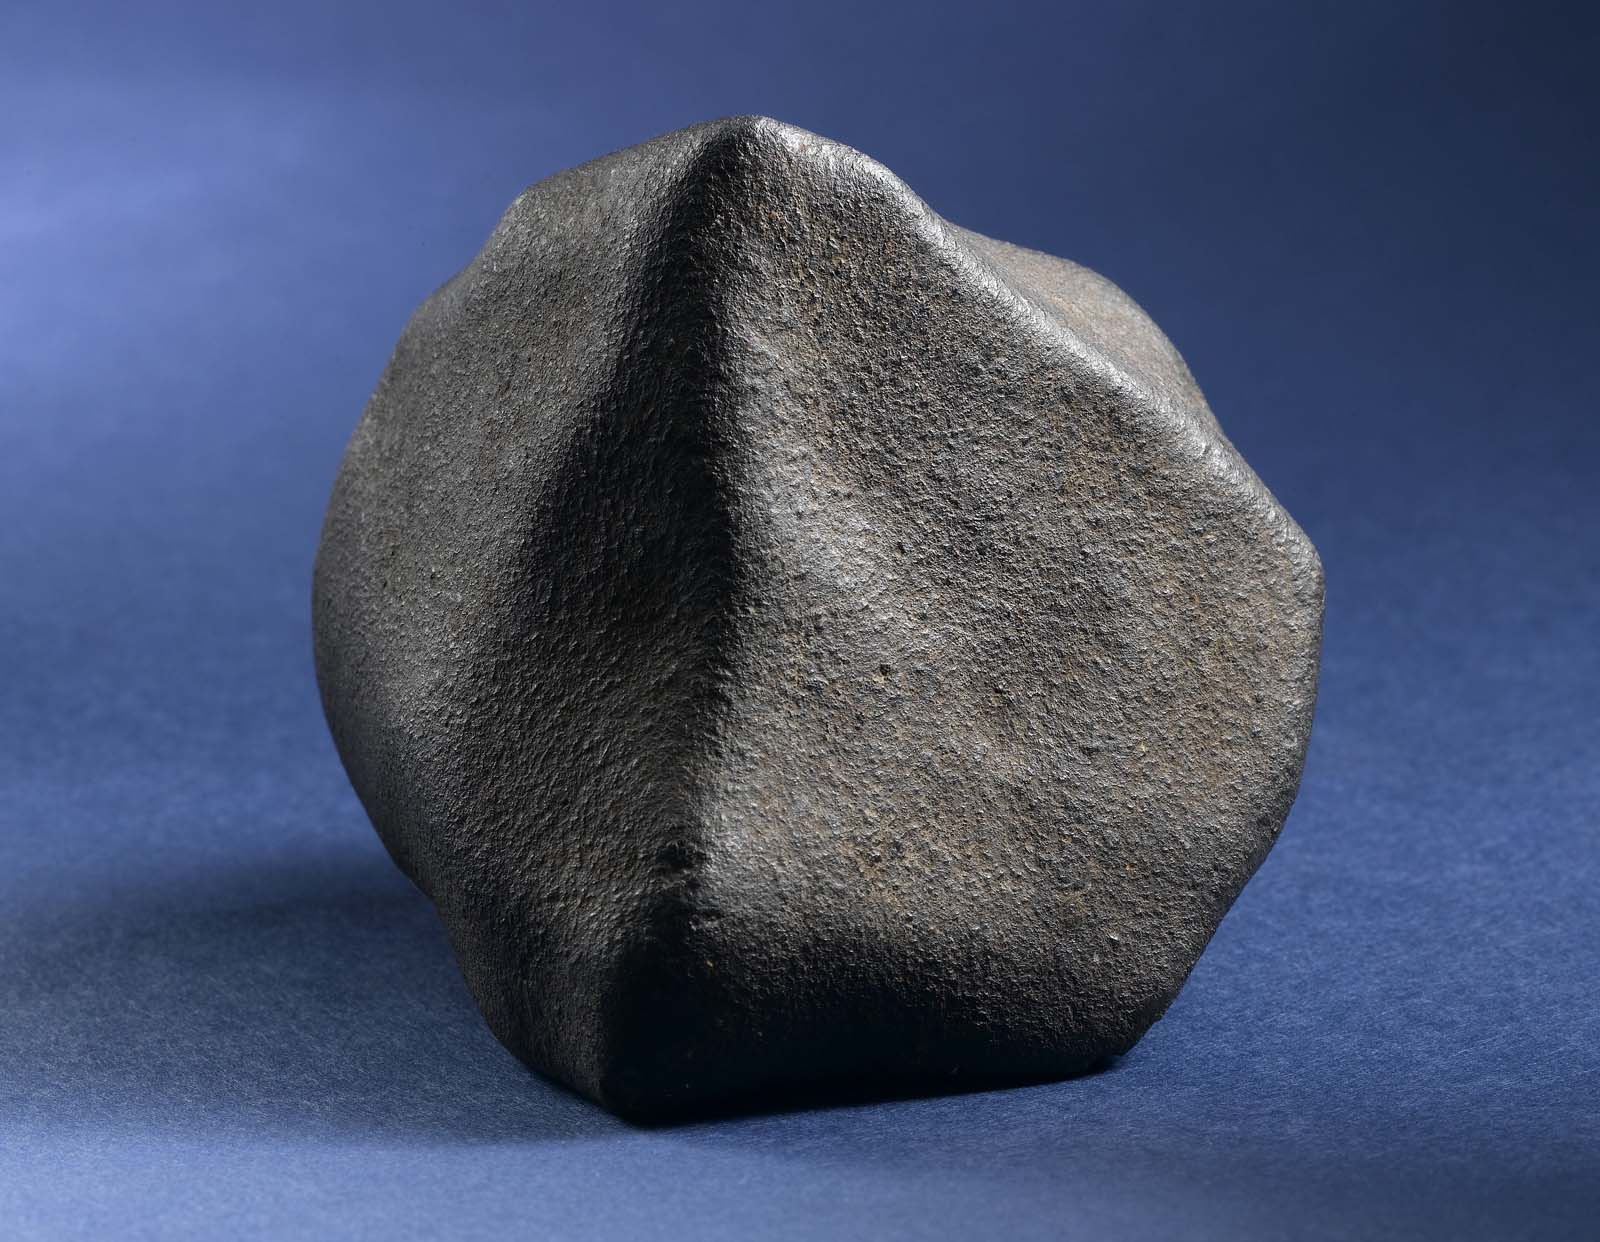 photo of a grey rock